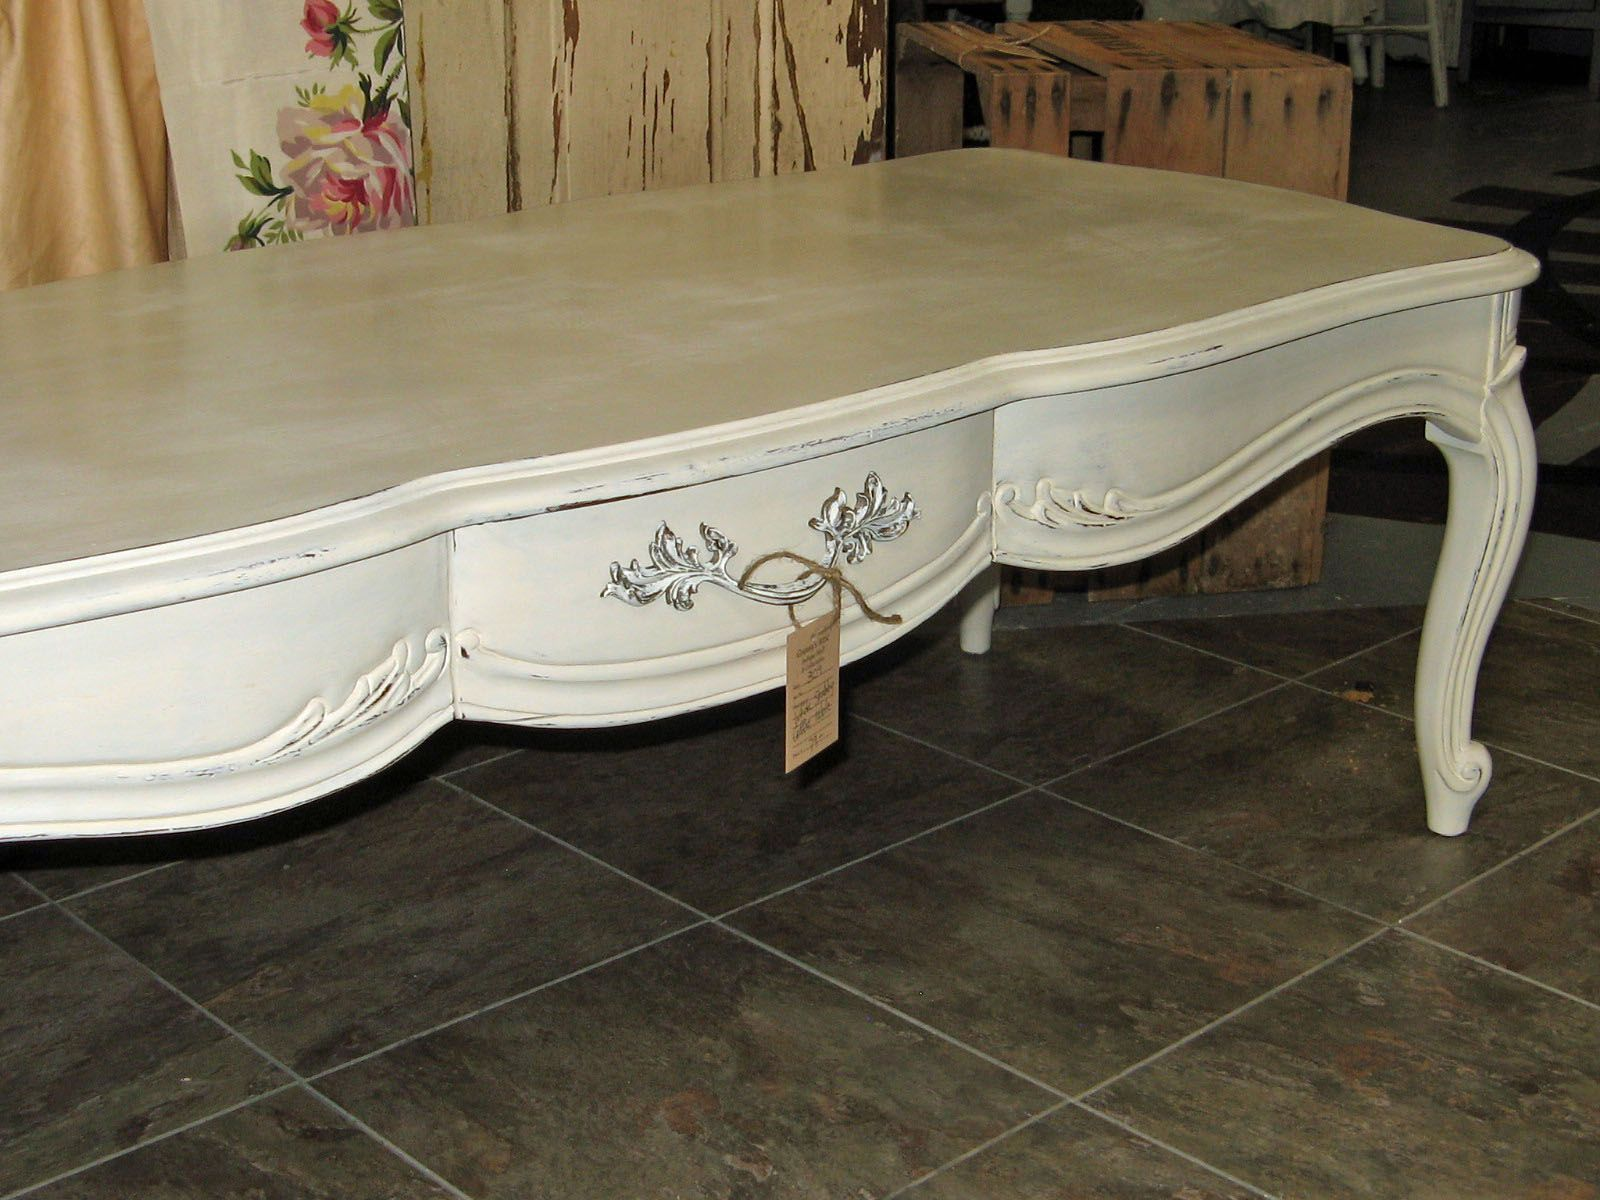 French Provincial coffee table in ASCP Old White with clear and